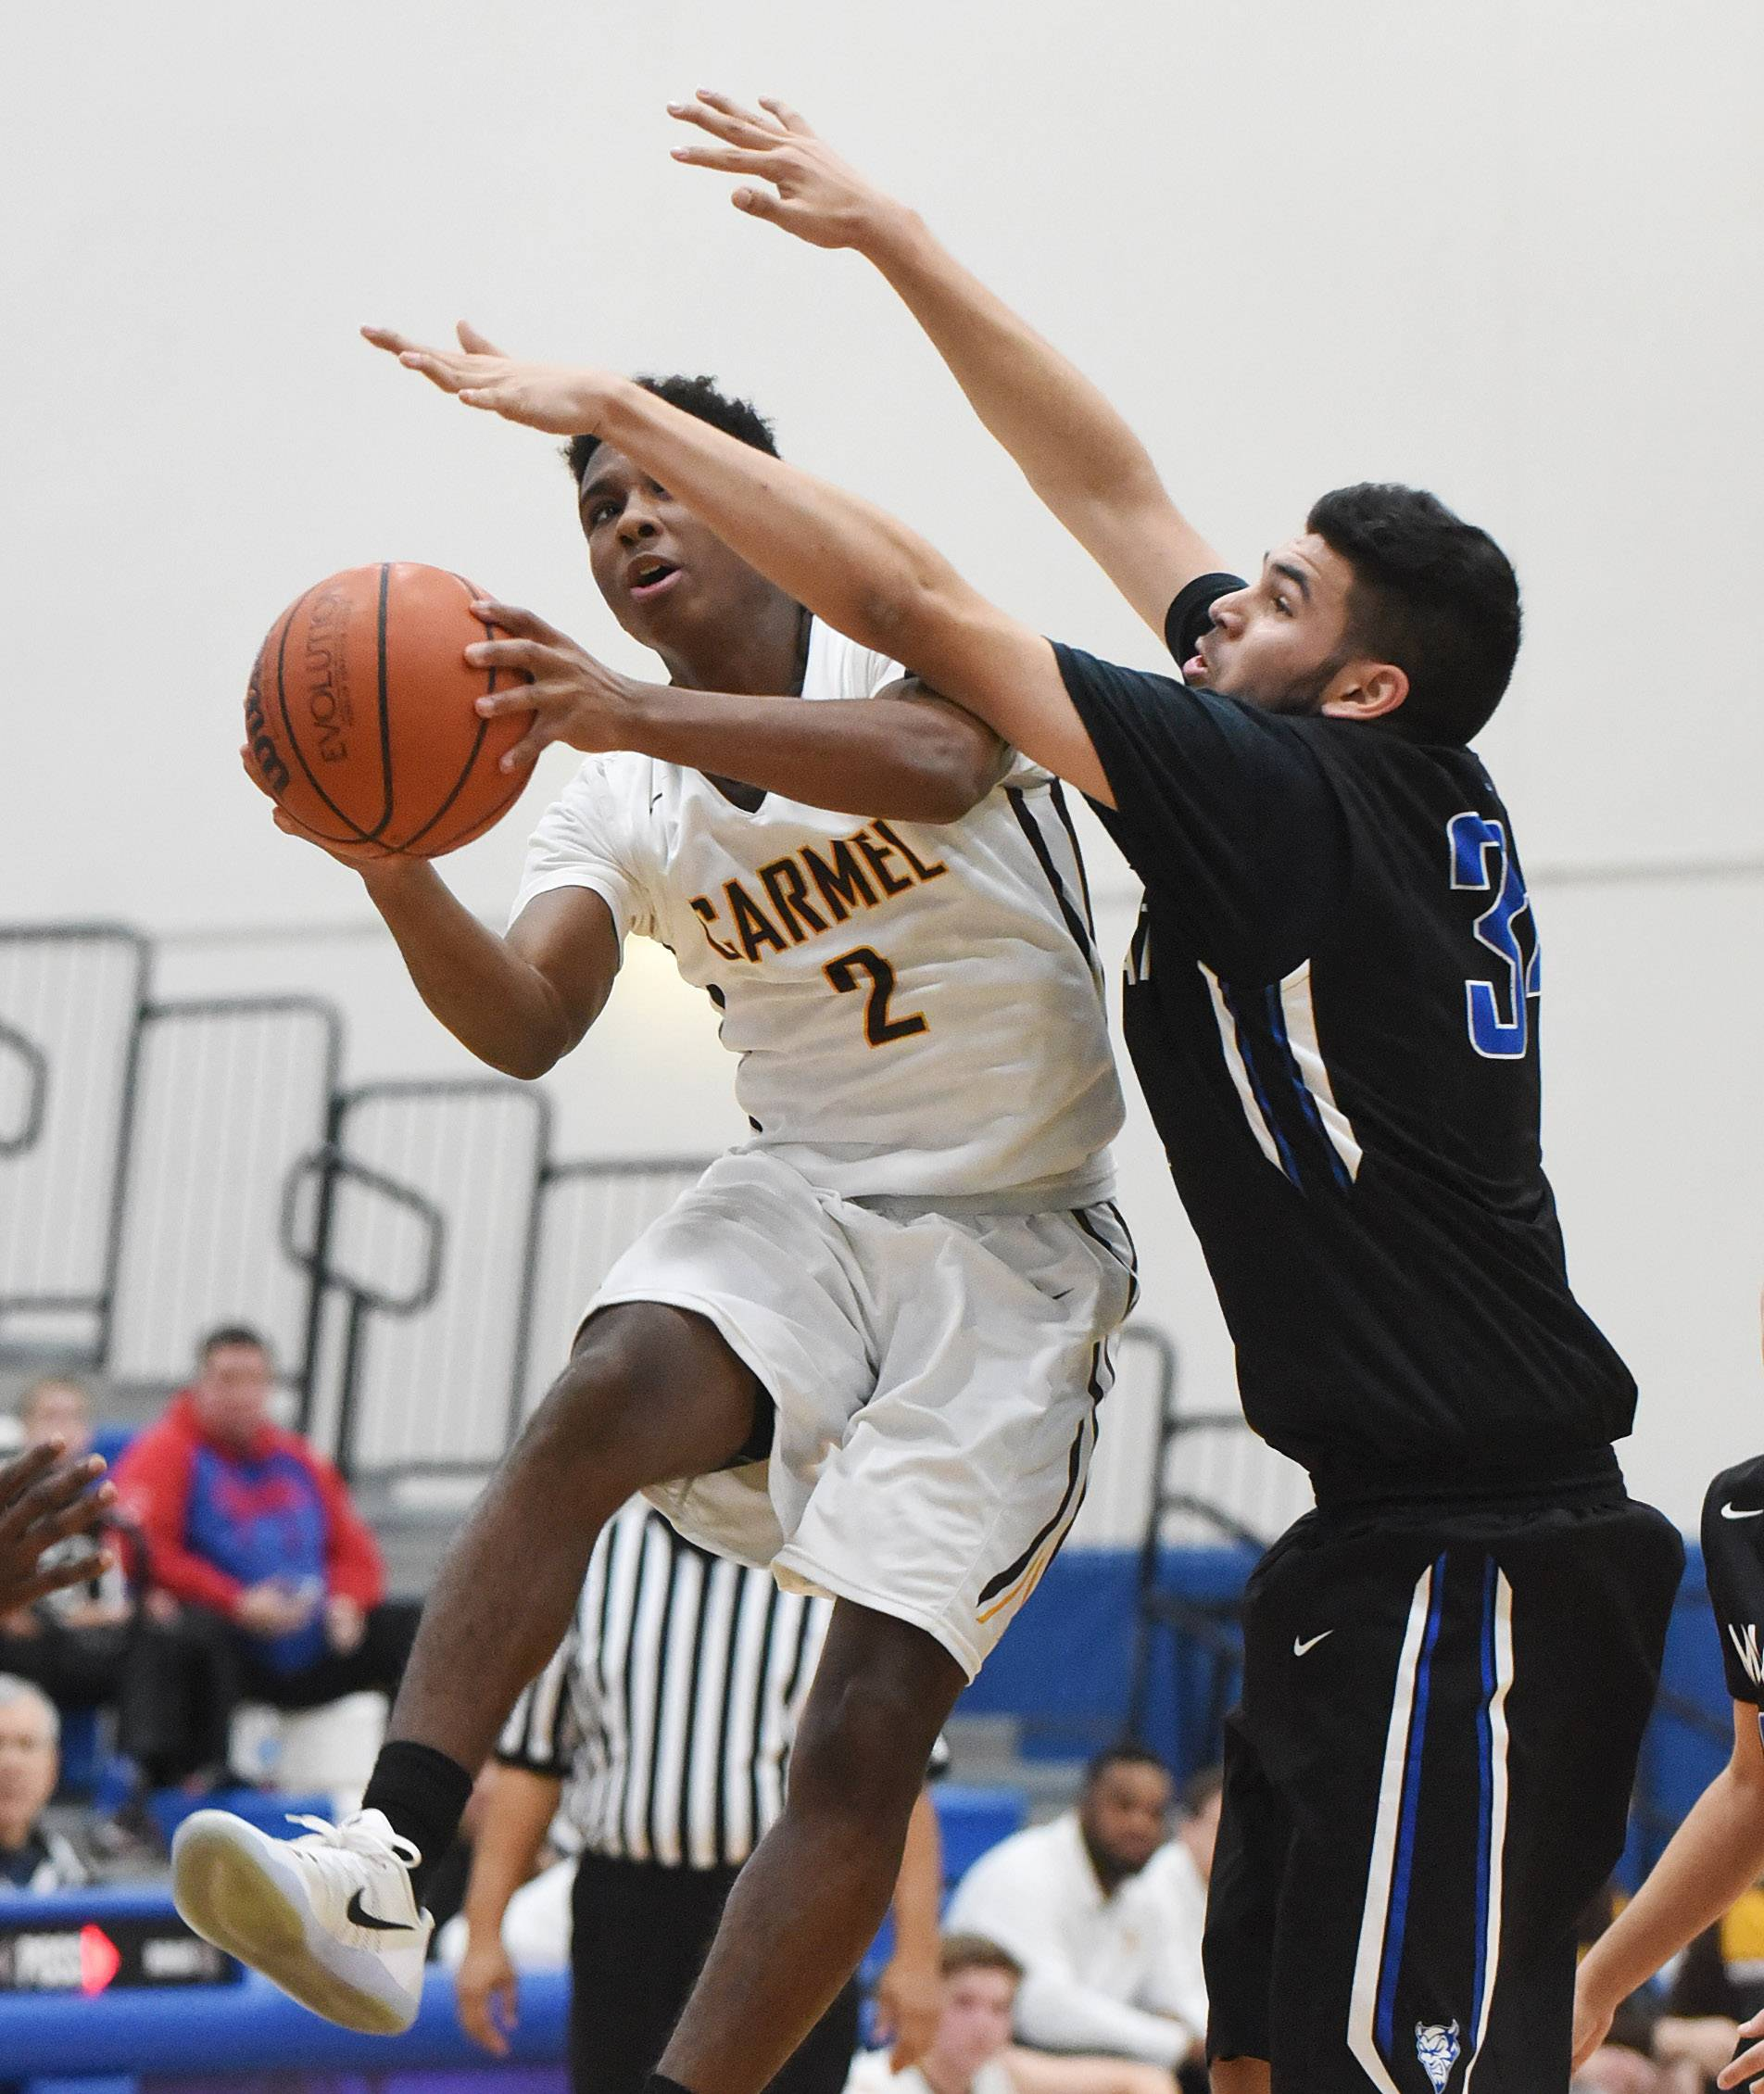 Carmel's Brian Julien (2) heads to the hoop past Maine East's Kyle Gilani during the MLK boys basketball tournament at Lake Zurich High School on Monday.